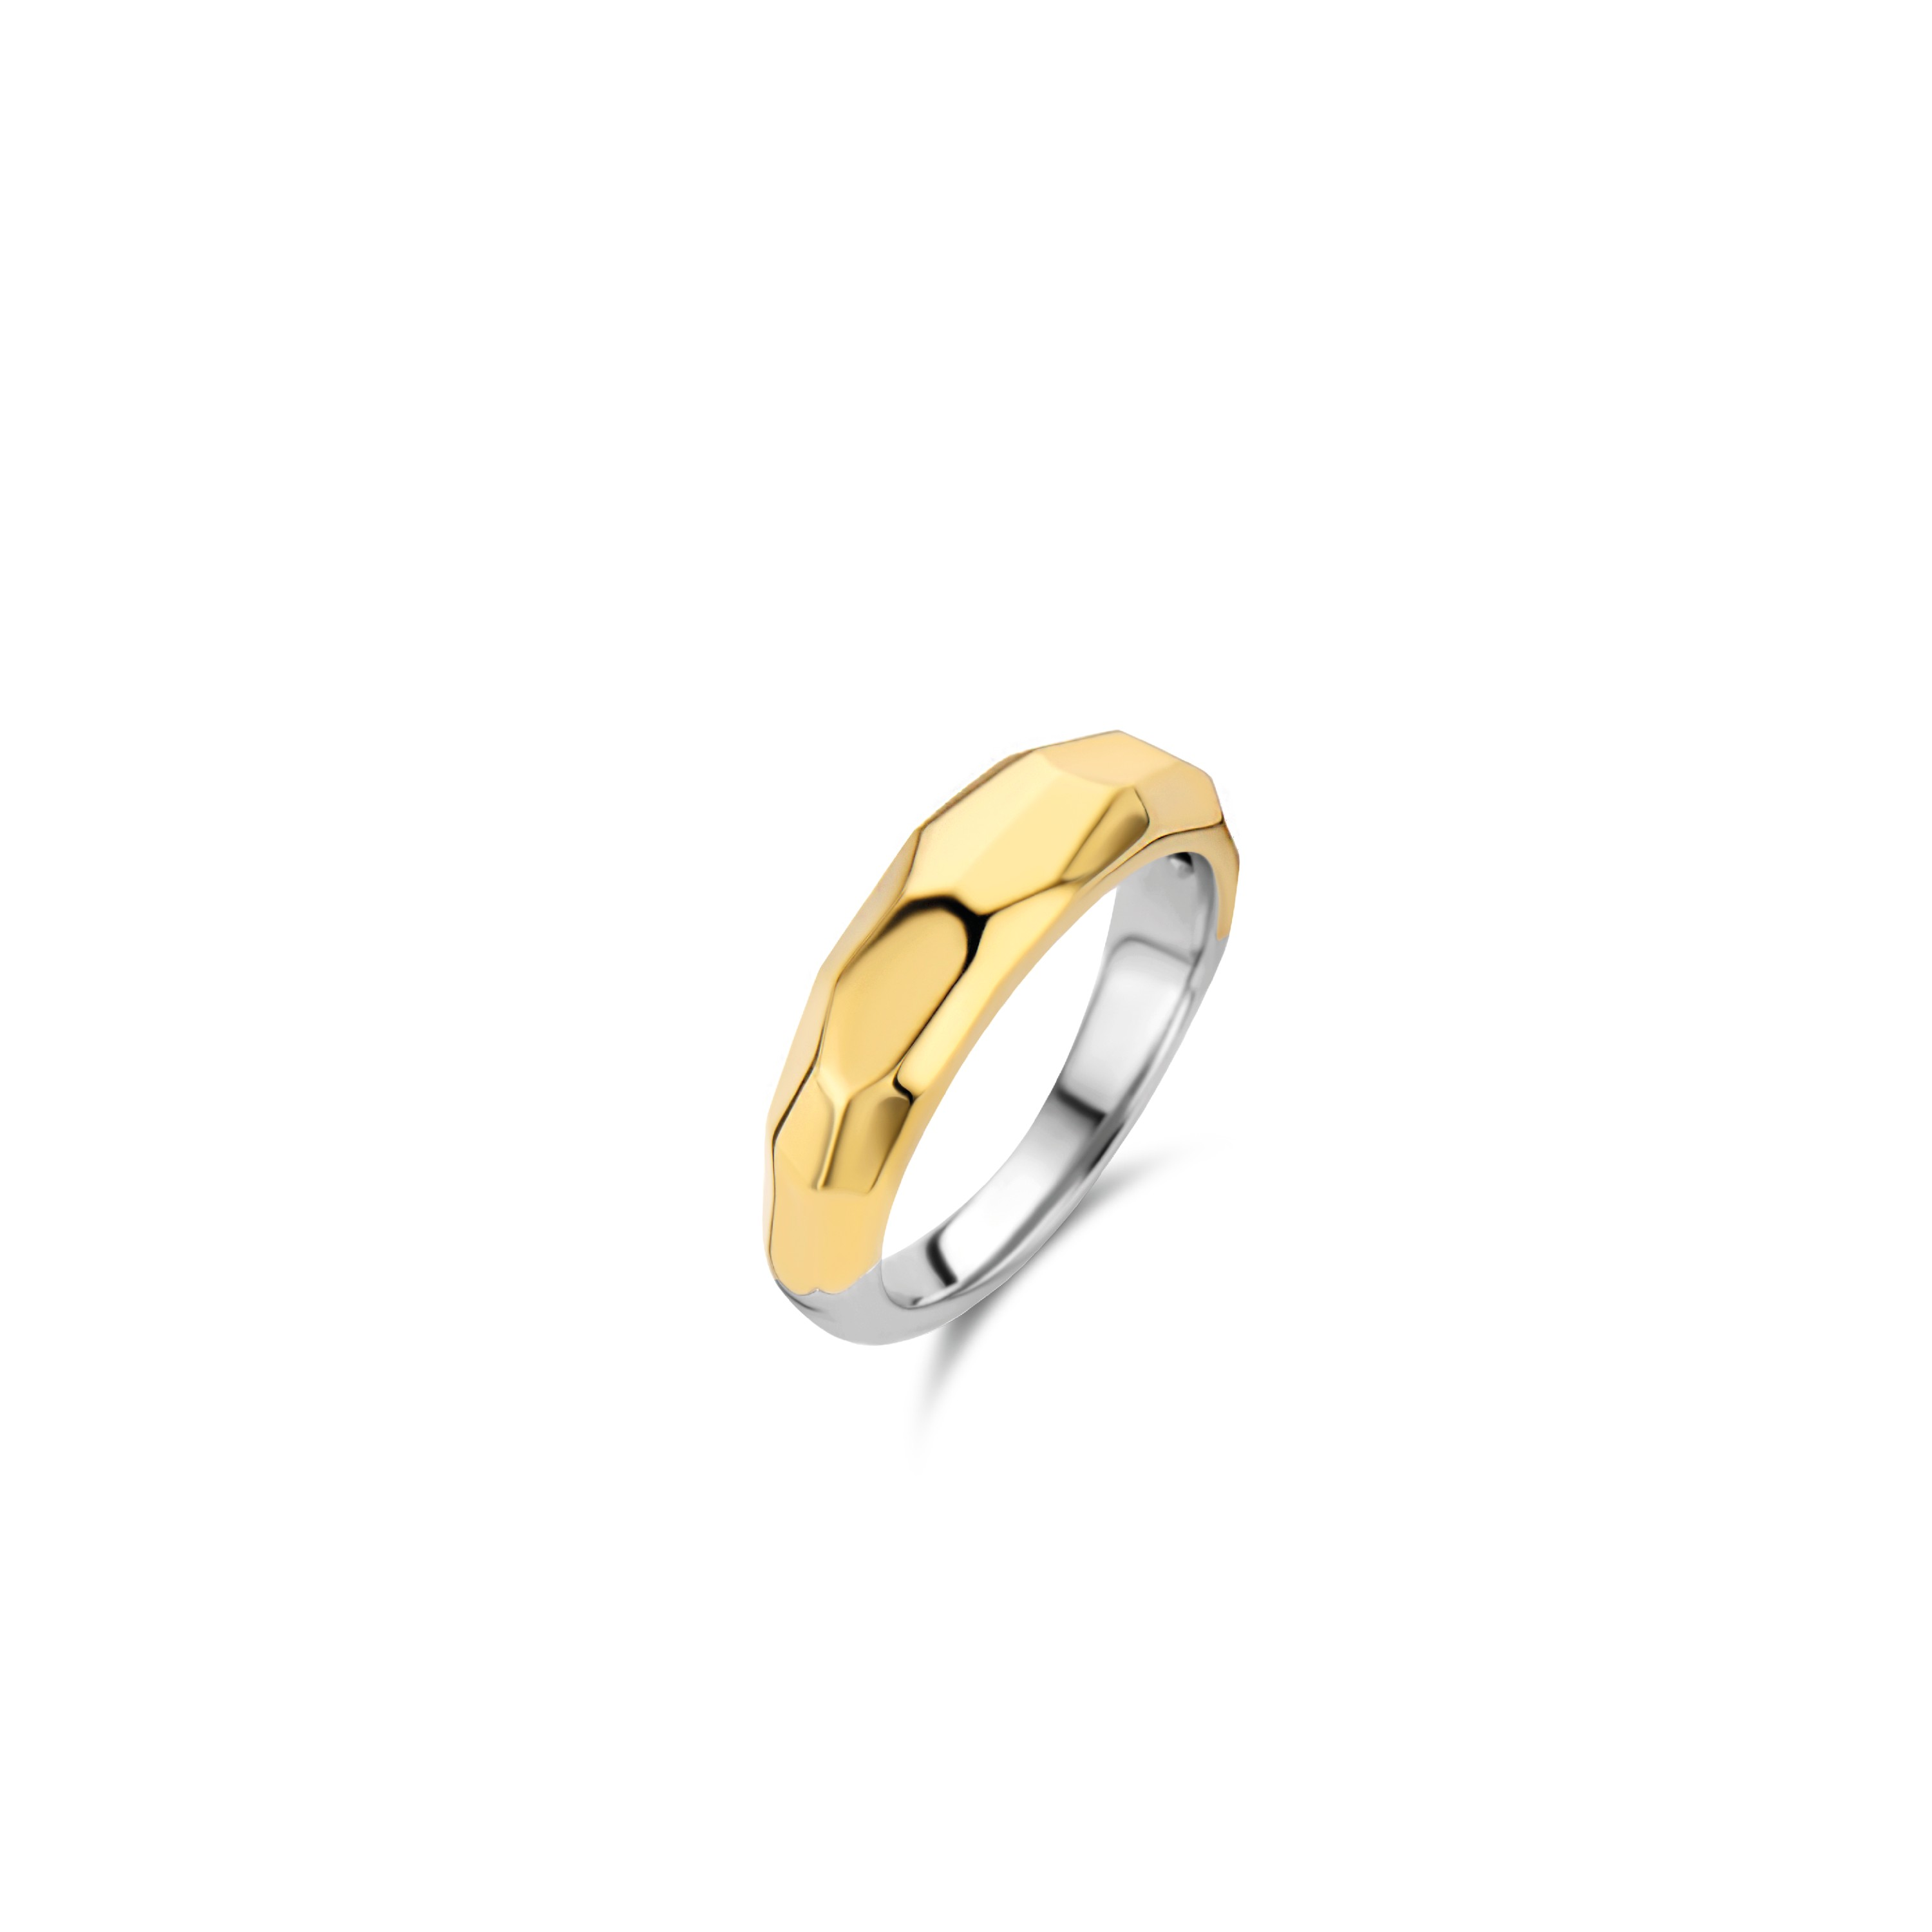 TI SENTO Milano Ring 12201SY Zilver gold plated Maat 60